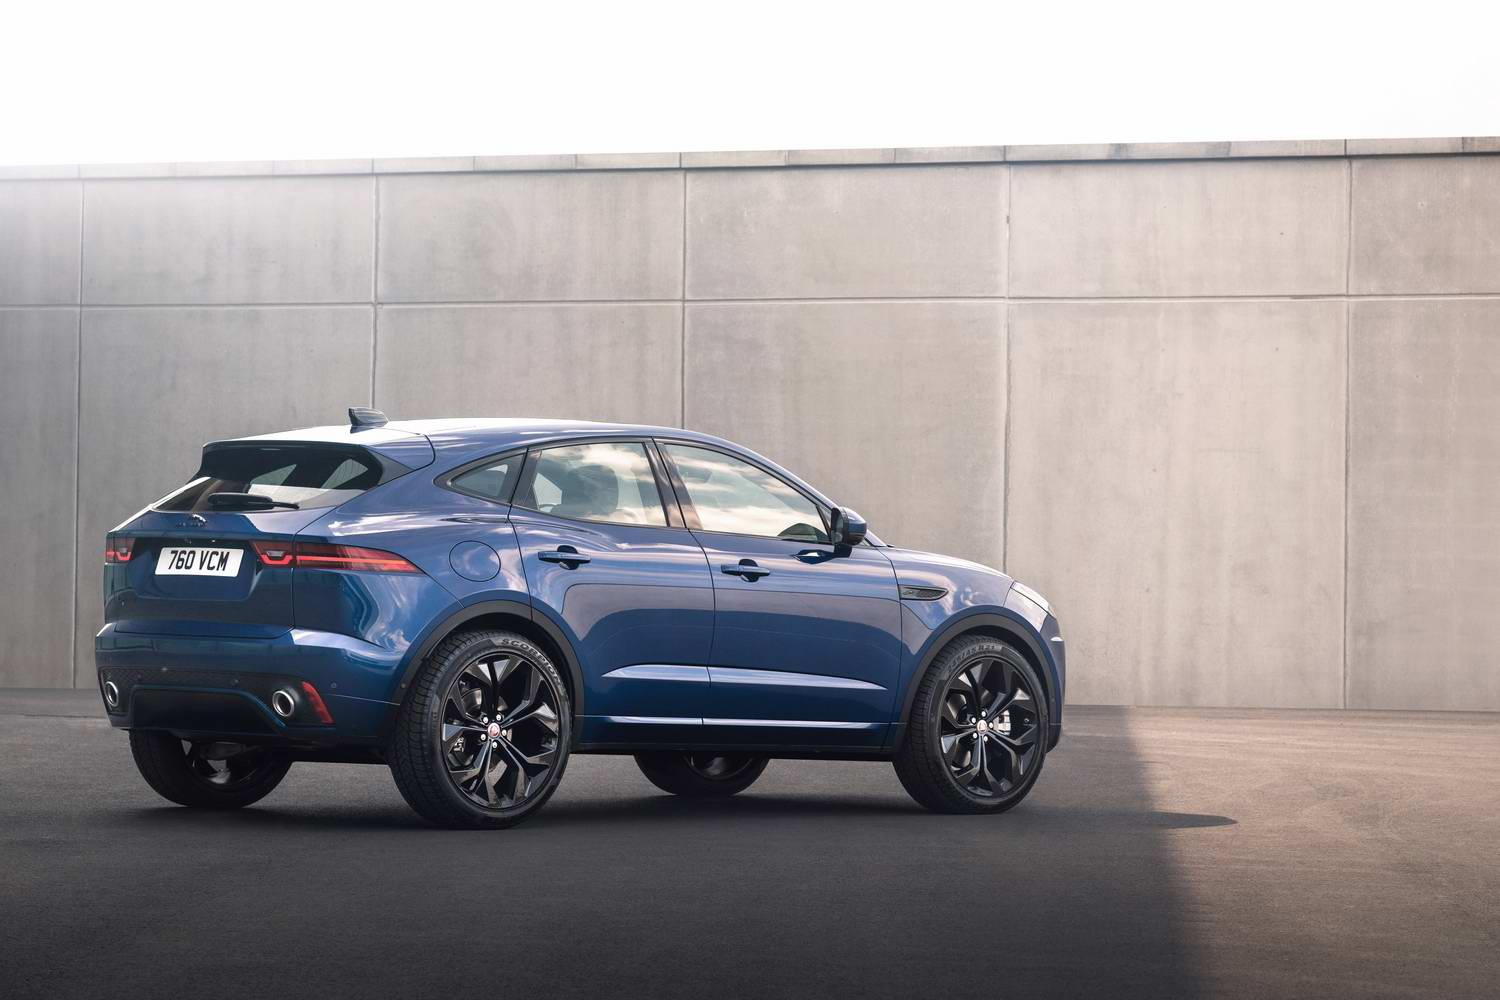 Car News | Jaguar E-Pace gets 2021 update | CompleteCar.ie